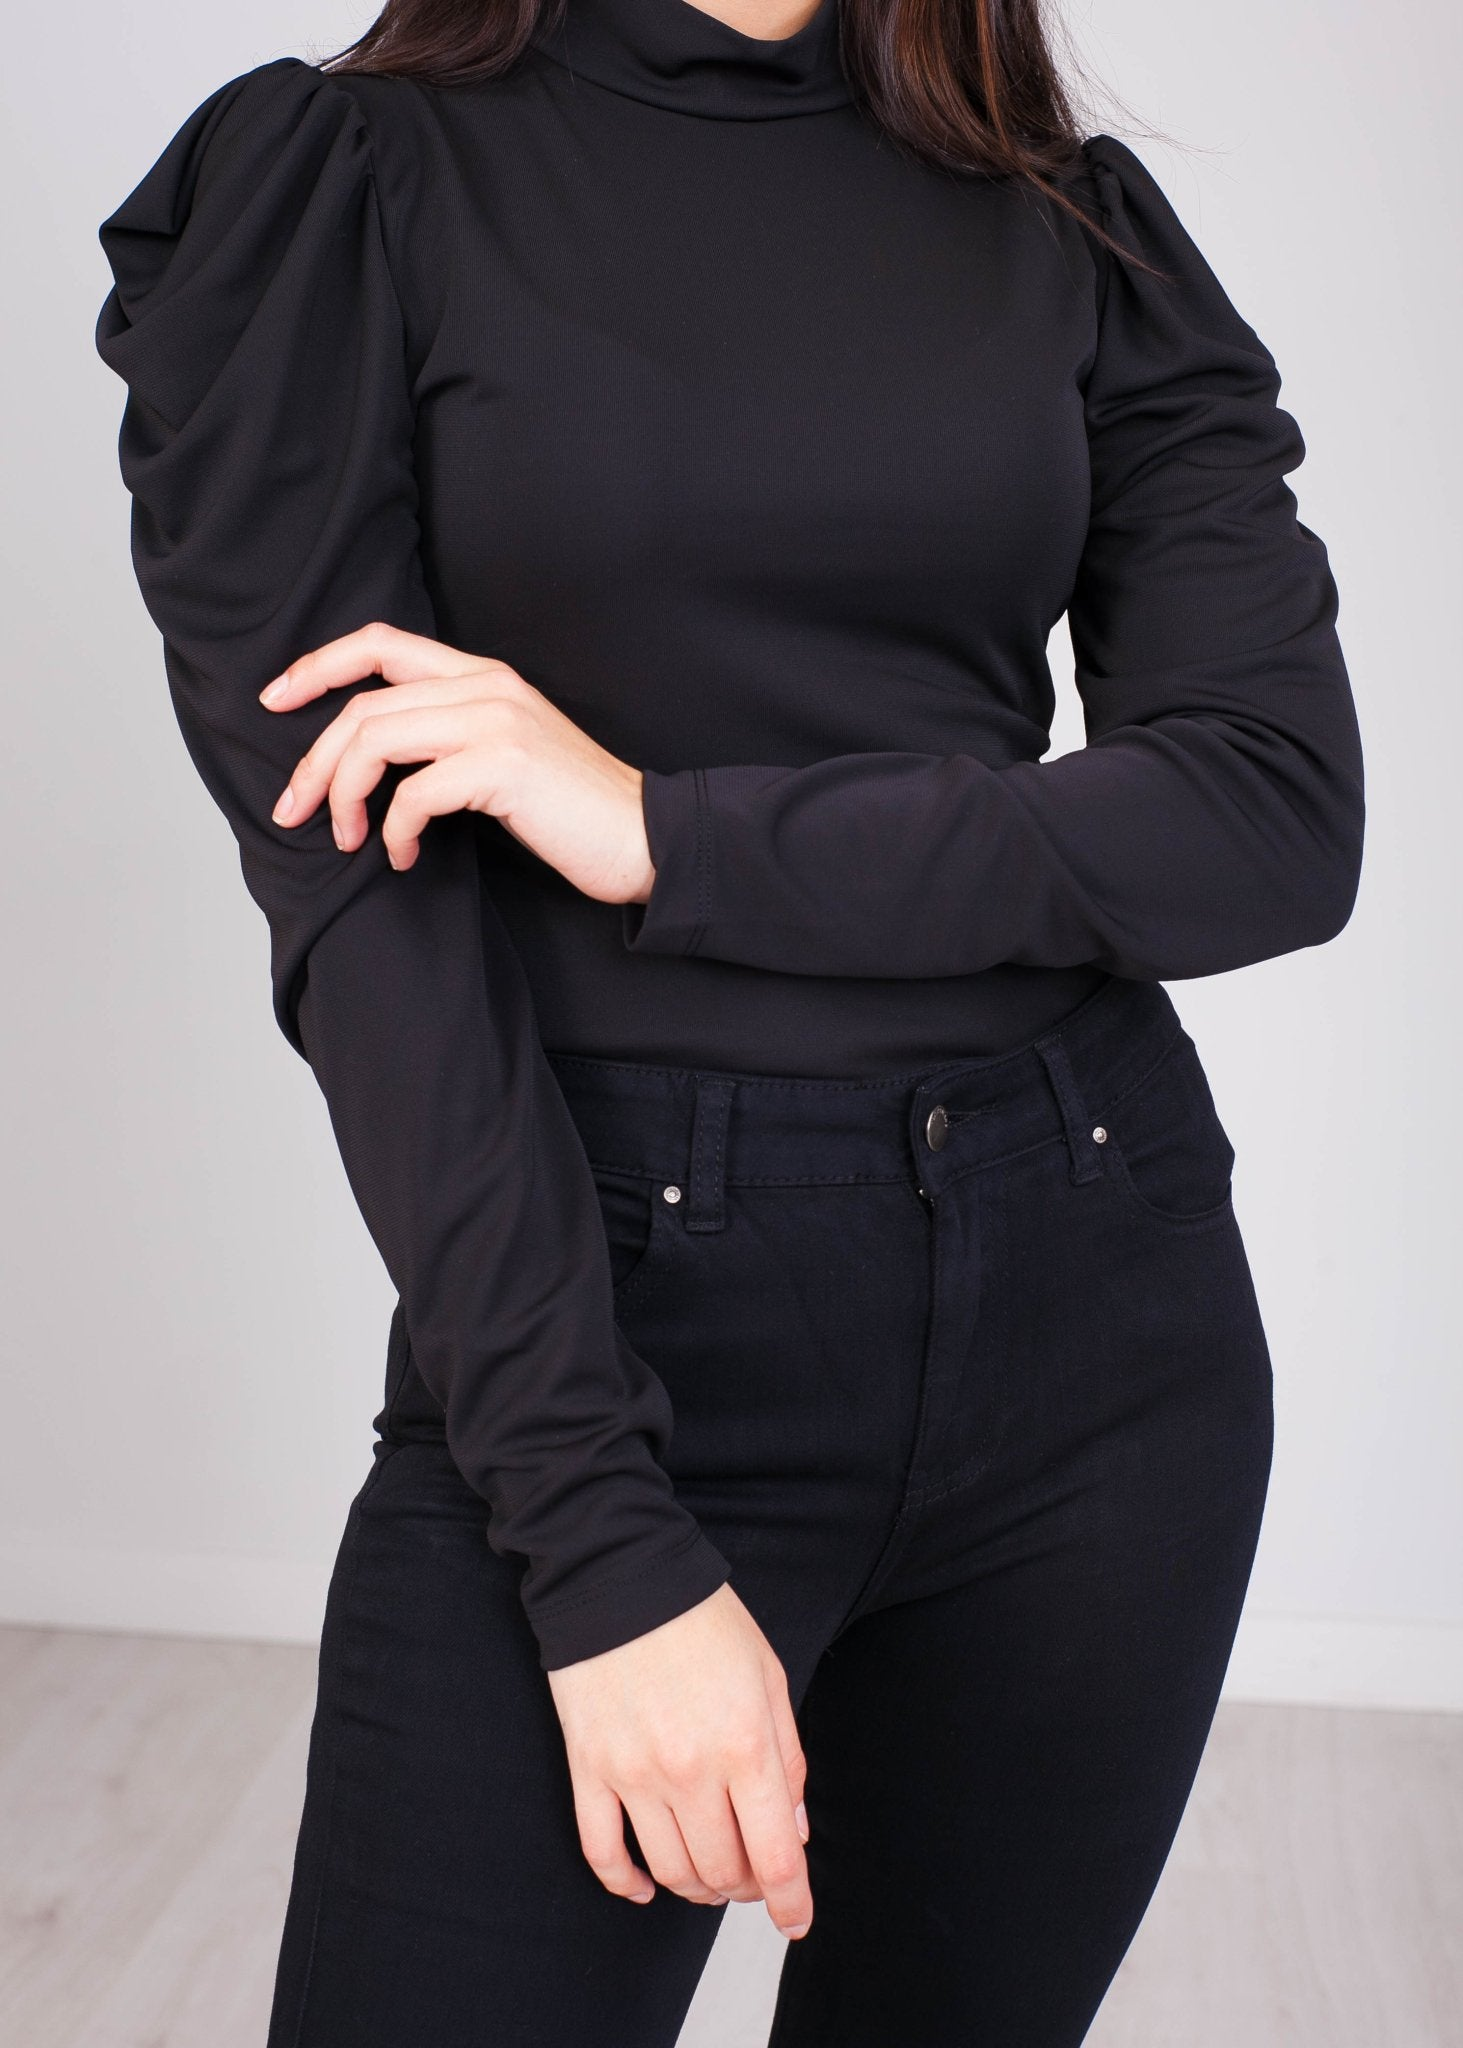 Faye Black Puff Sleeve Bodysuit - The Walk in Wardrobe